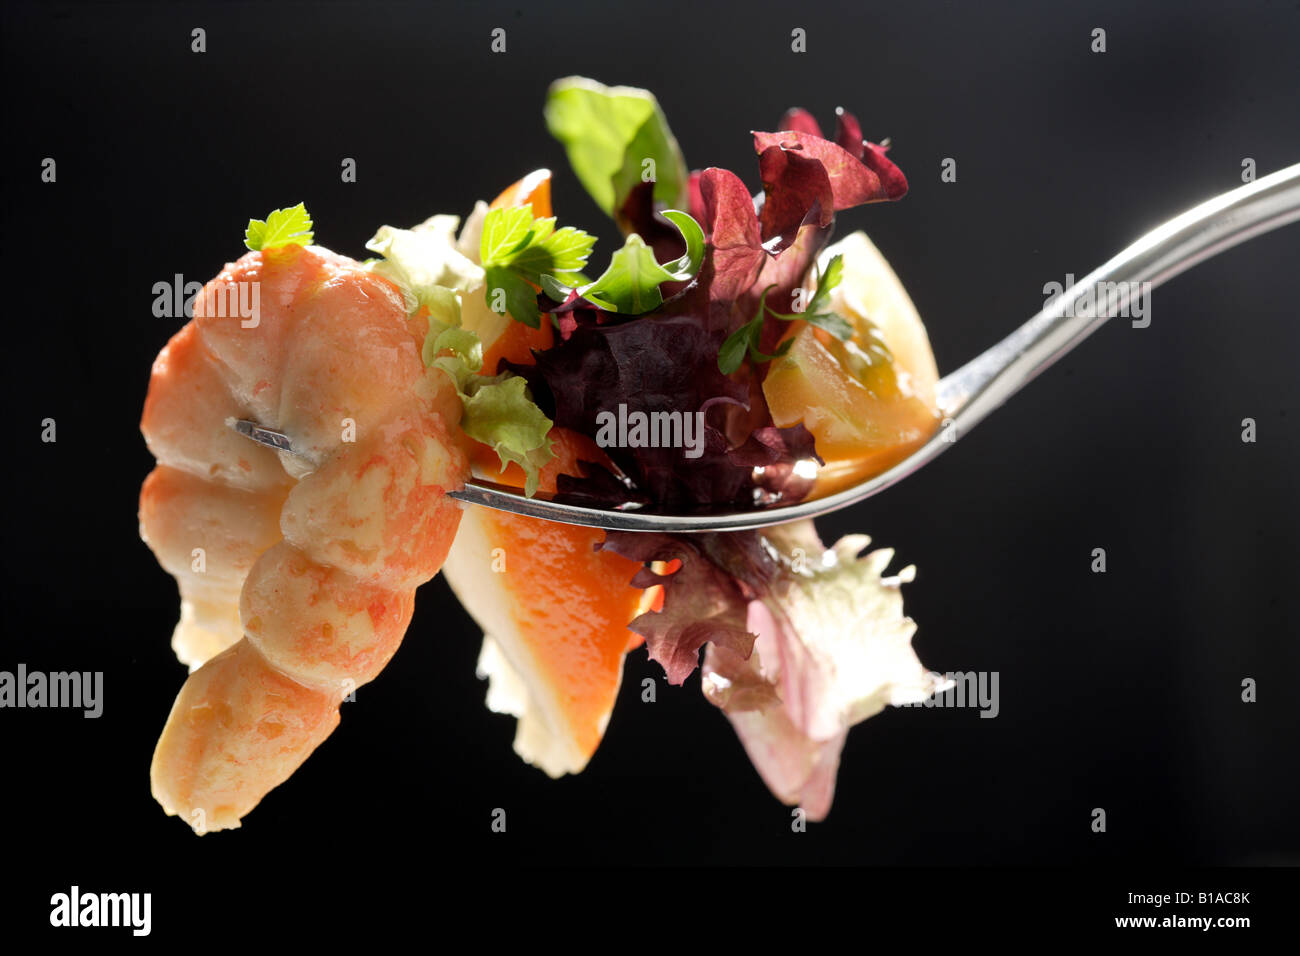 Fork with crab salad - Stock Image